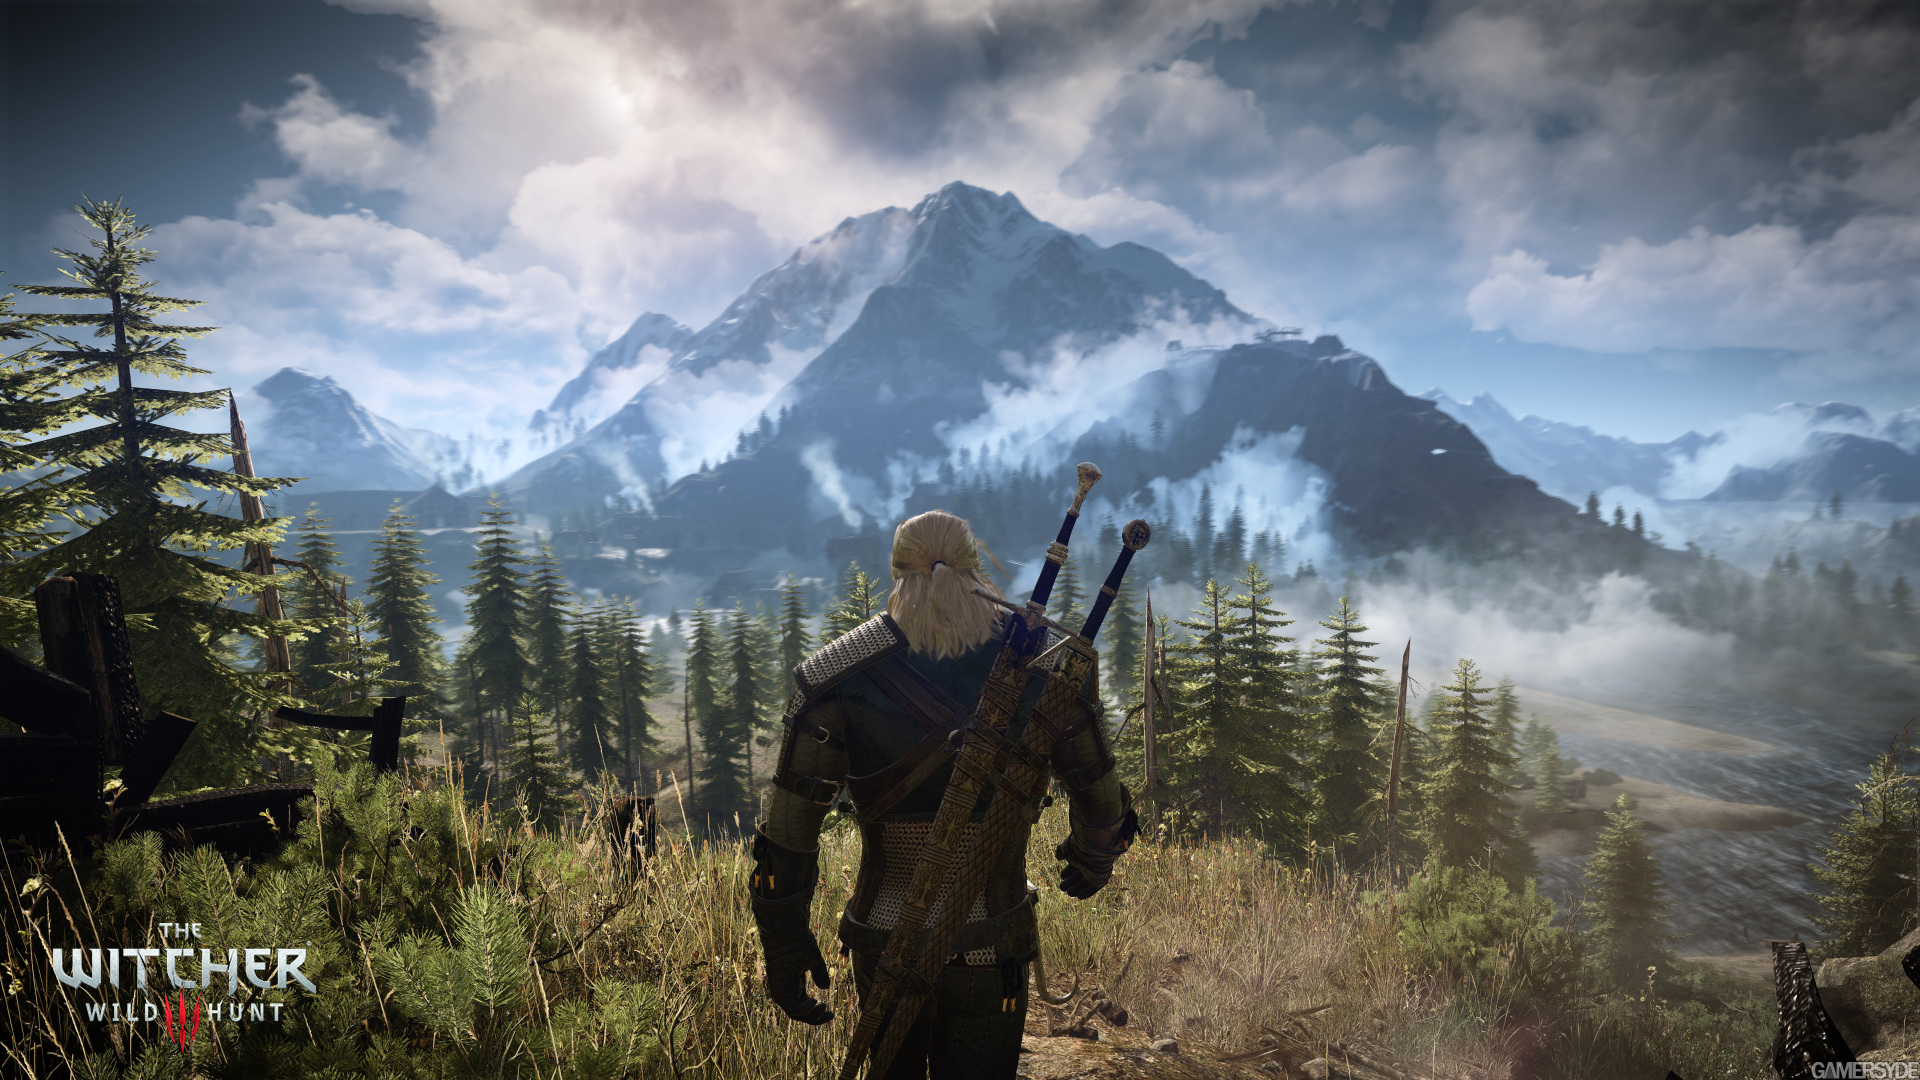 The Witcher 3 : Wild Hunt - Death is Coming [Tópico ...: http://forum.jogos.uol.com.br/the-witcher-3--wild-hunt---death-is-coming-topico-oficial_t_3430090